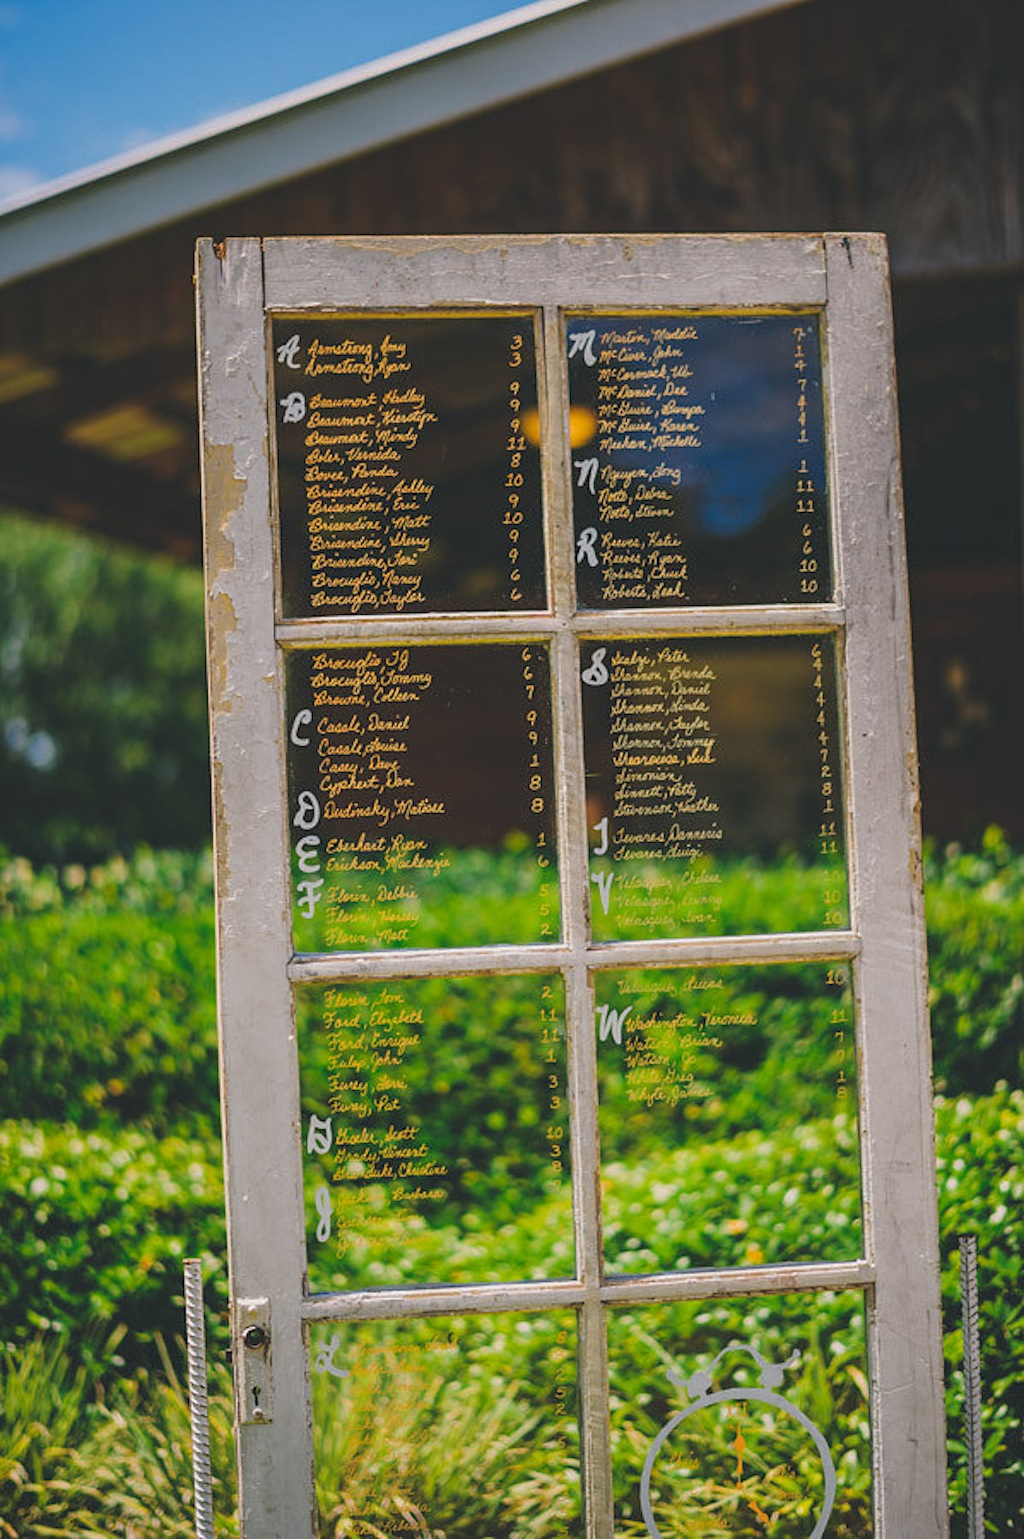 Rustic Window Pane Glass Door Wedding Seating Chart Marry Me Tampa Bay Local Real Wedding Inspiration Vendor Recommendation Reviews